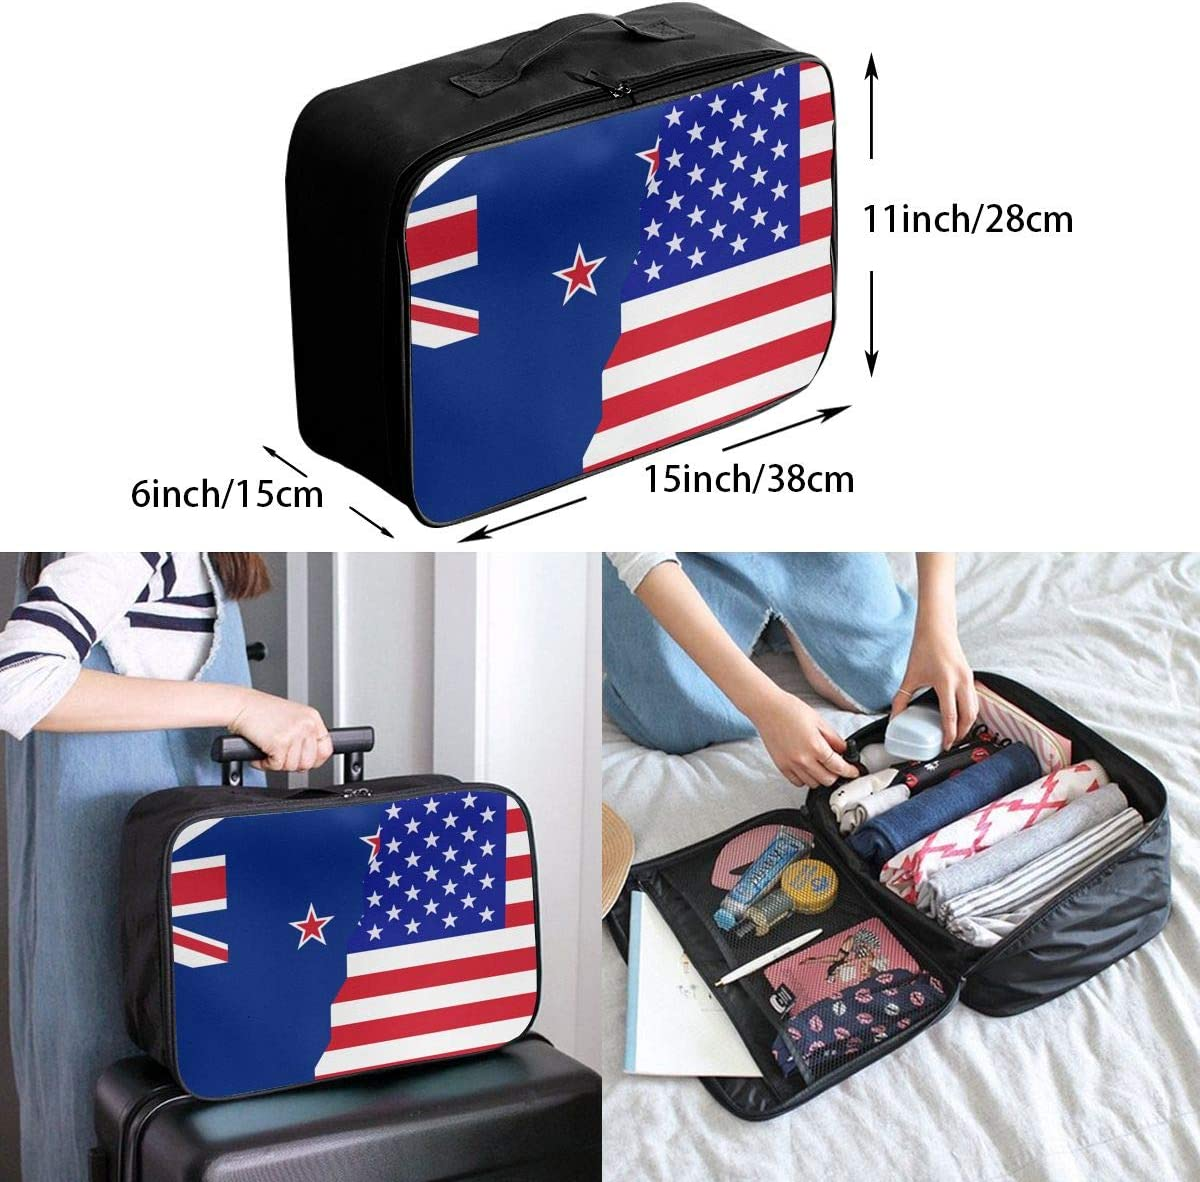 American New Zealand Flag Overnight Carry On Luggage Waterproof Fashion Travel Bag Lightweight Suitcases